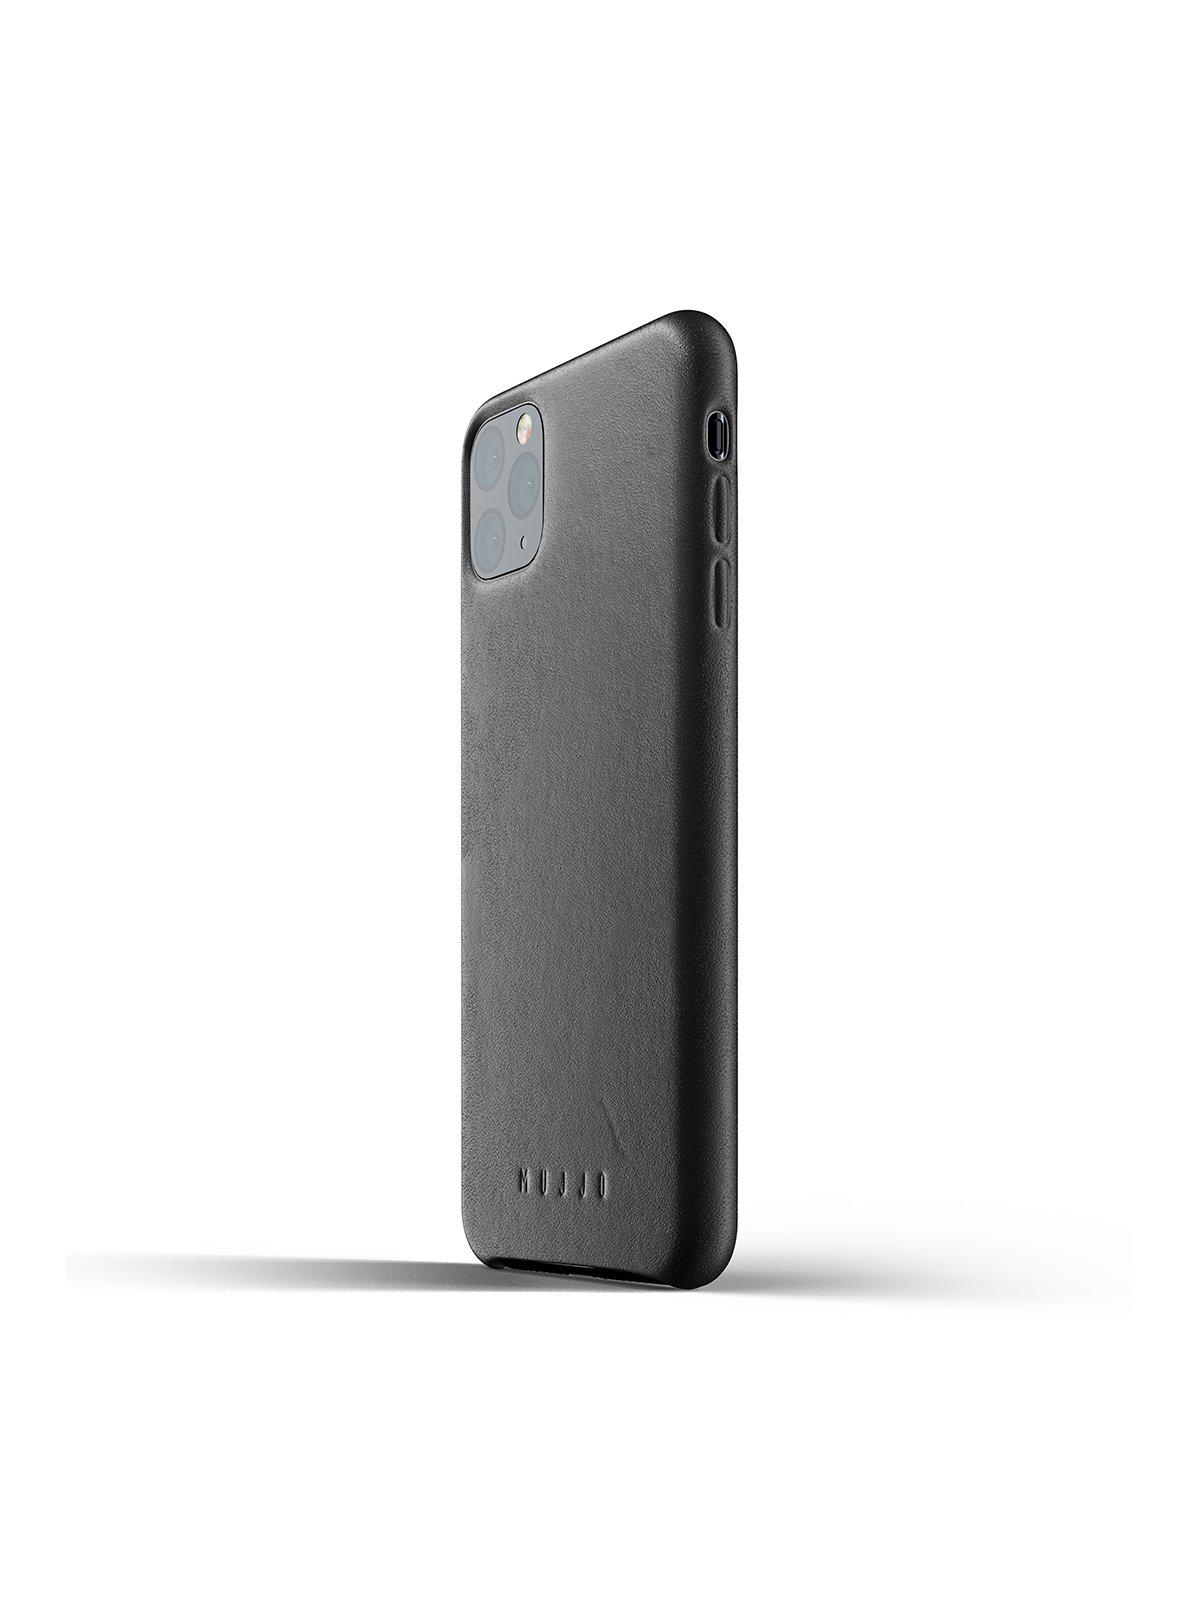 Mujjo Full Leather Case for iPhone 11 Pro Max Black - MORE by Morello Indonesia